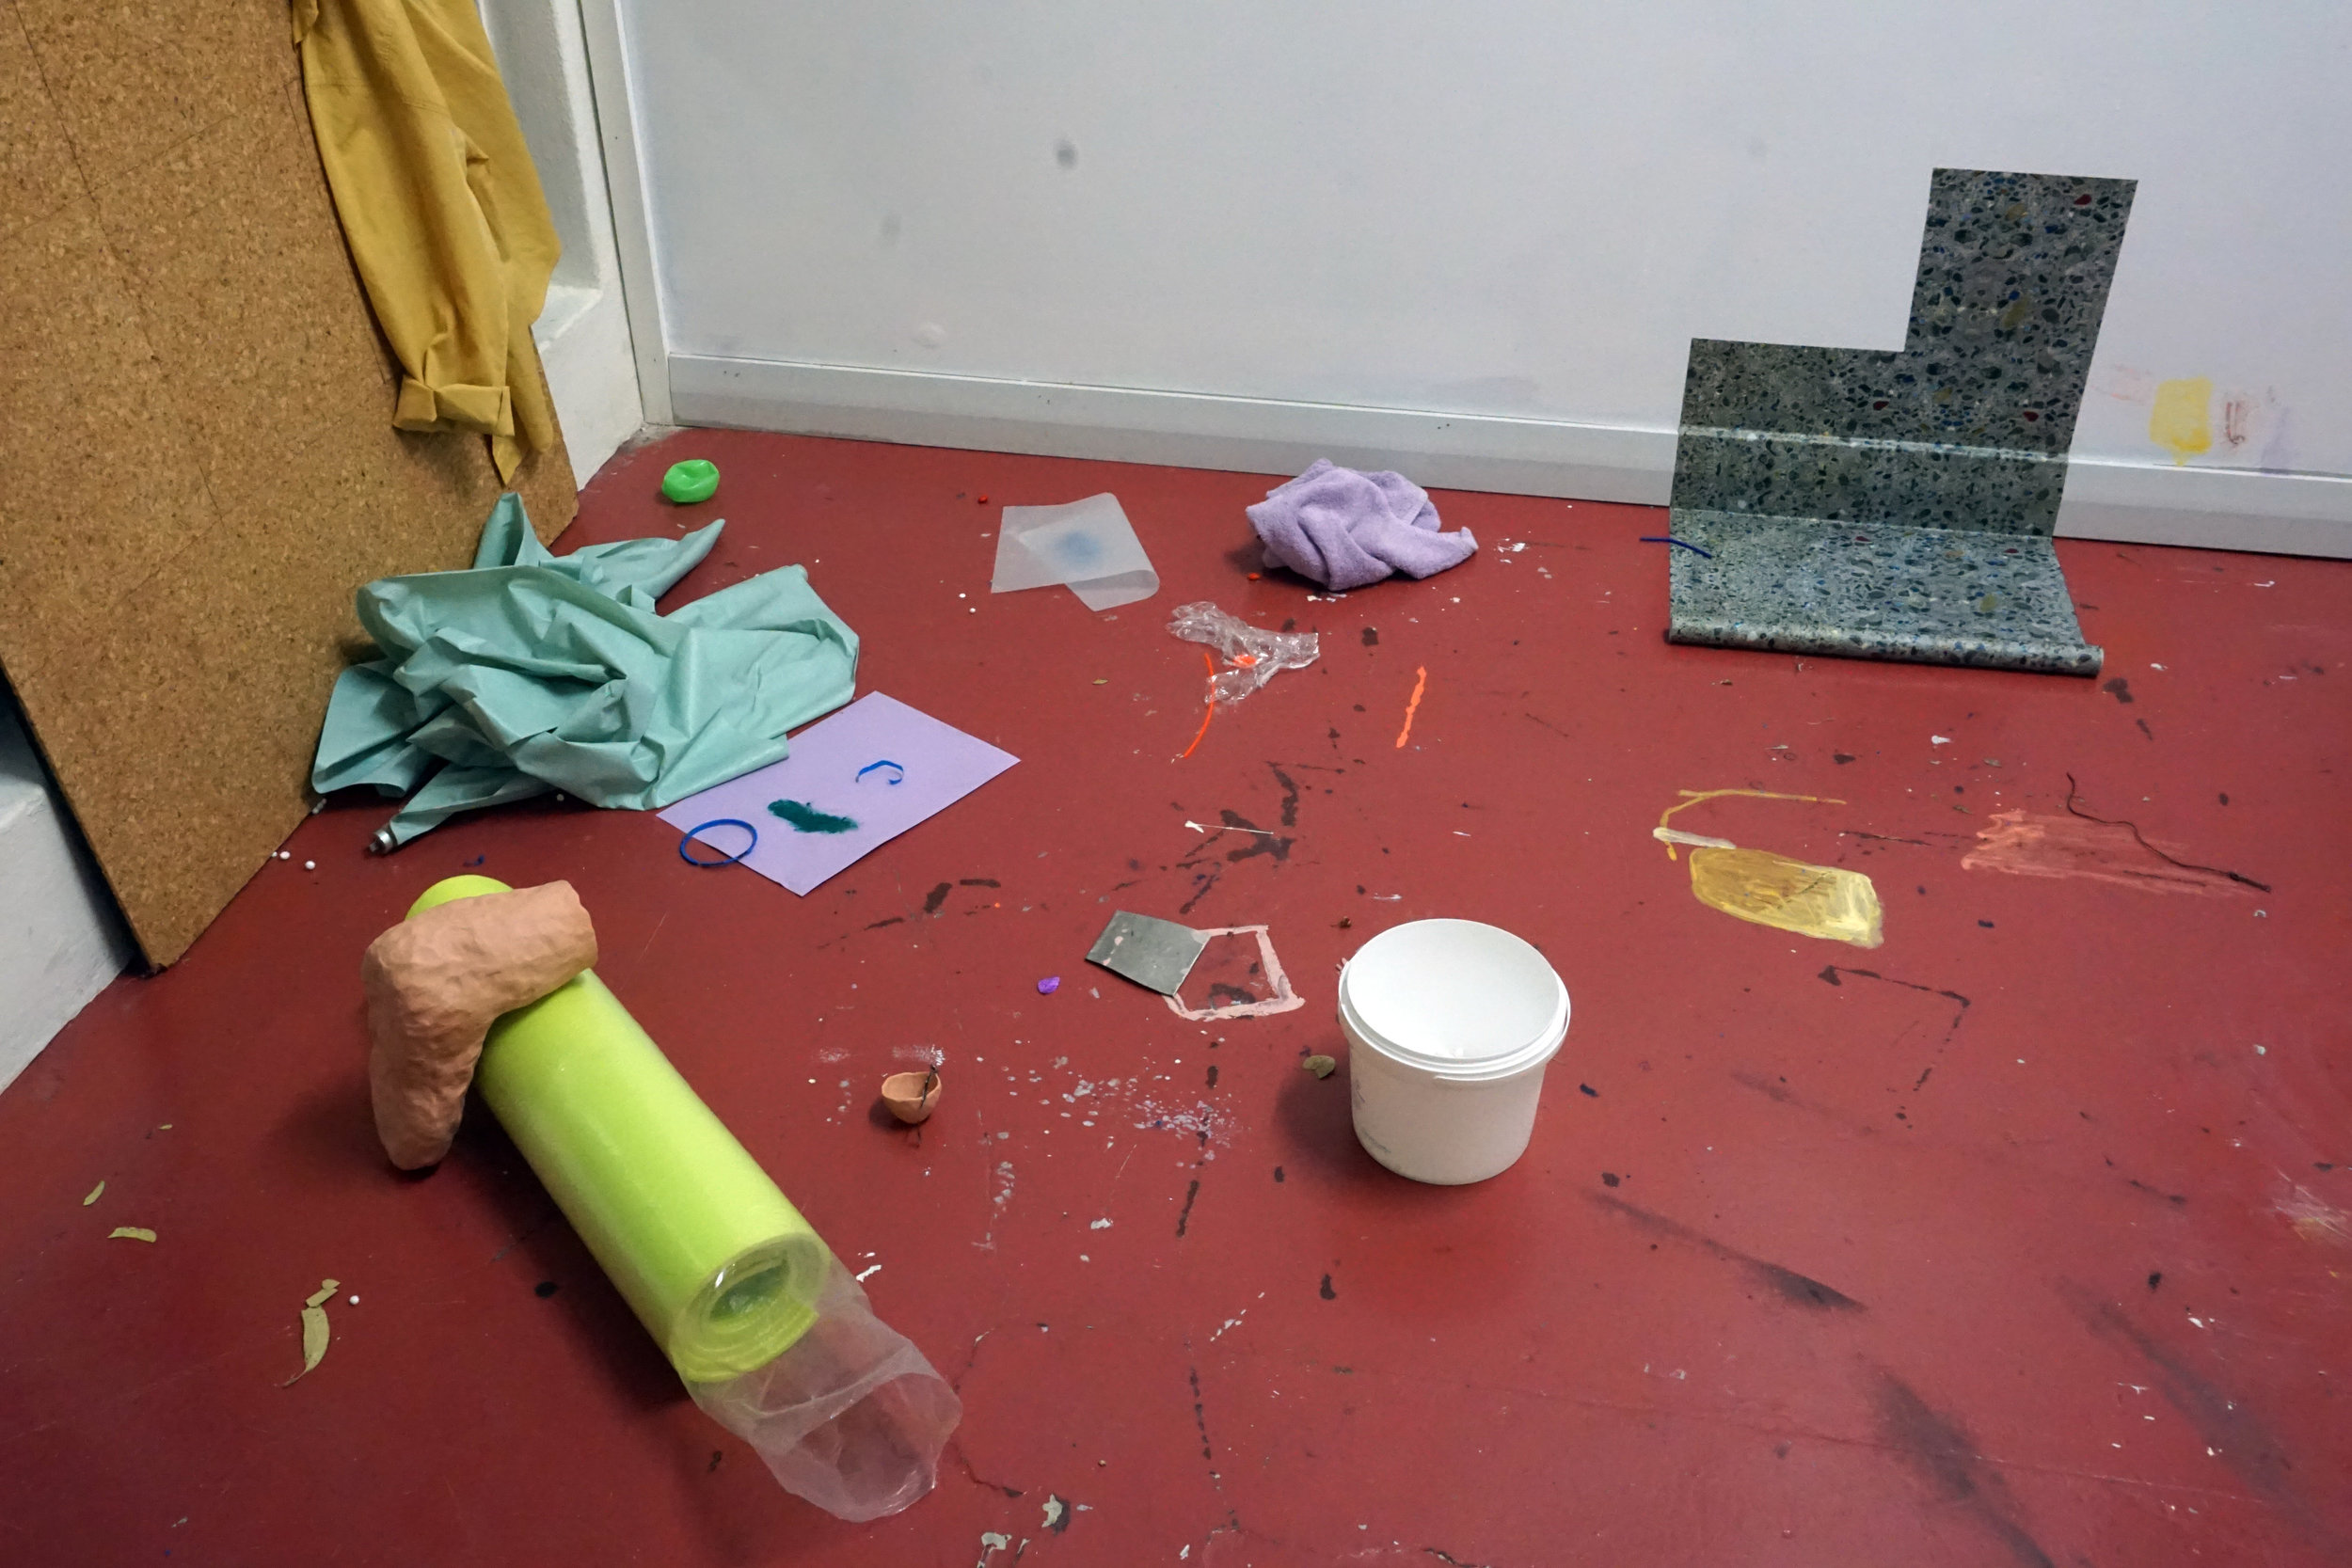 Holly Macdonald's open studio during her Travelling Artist Residency, 2018. Photo credit: the artist.